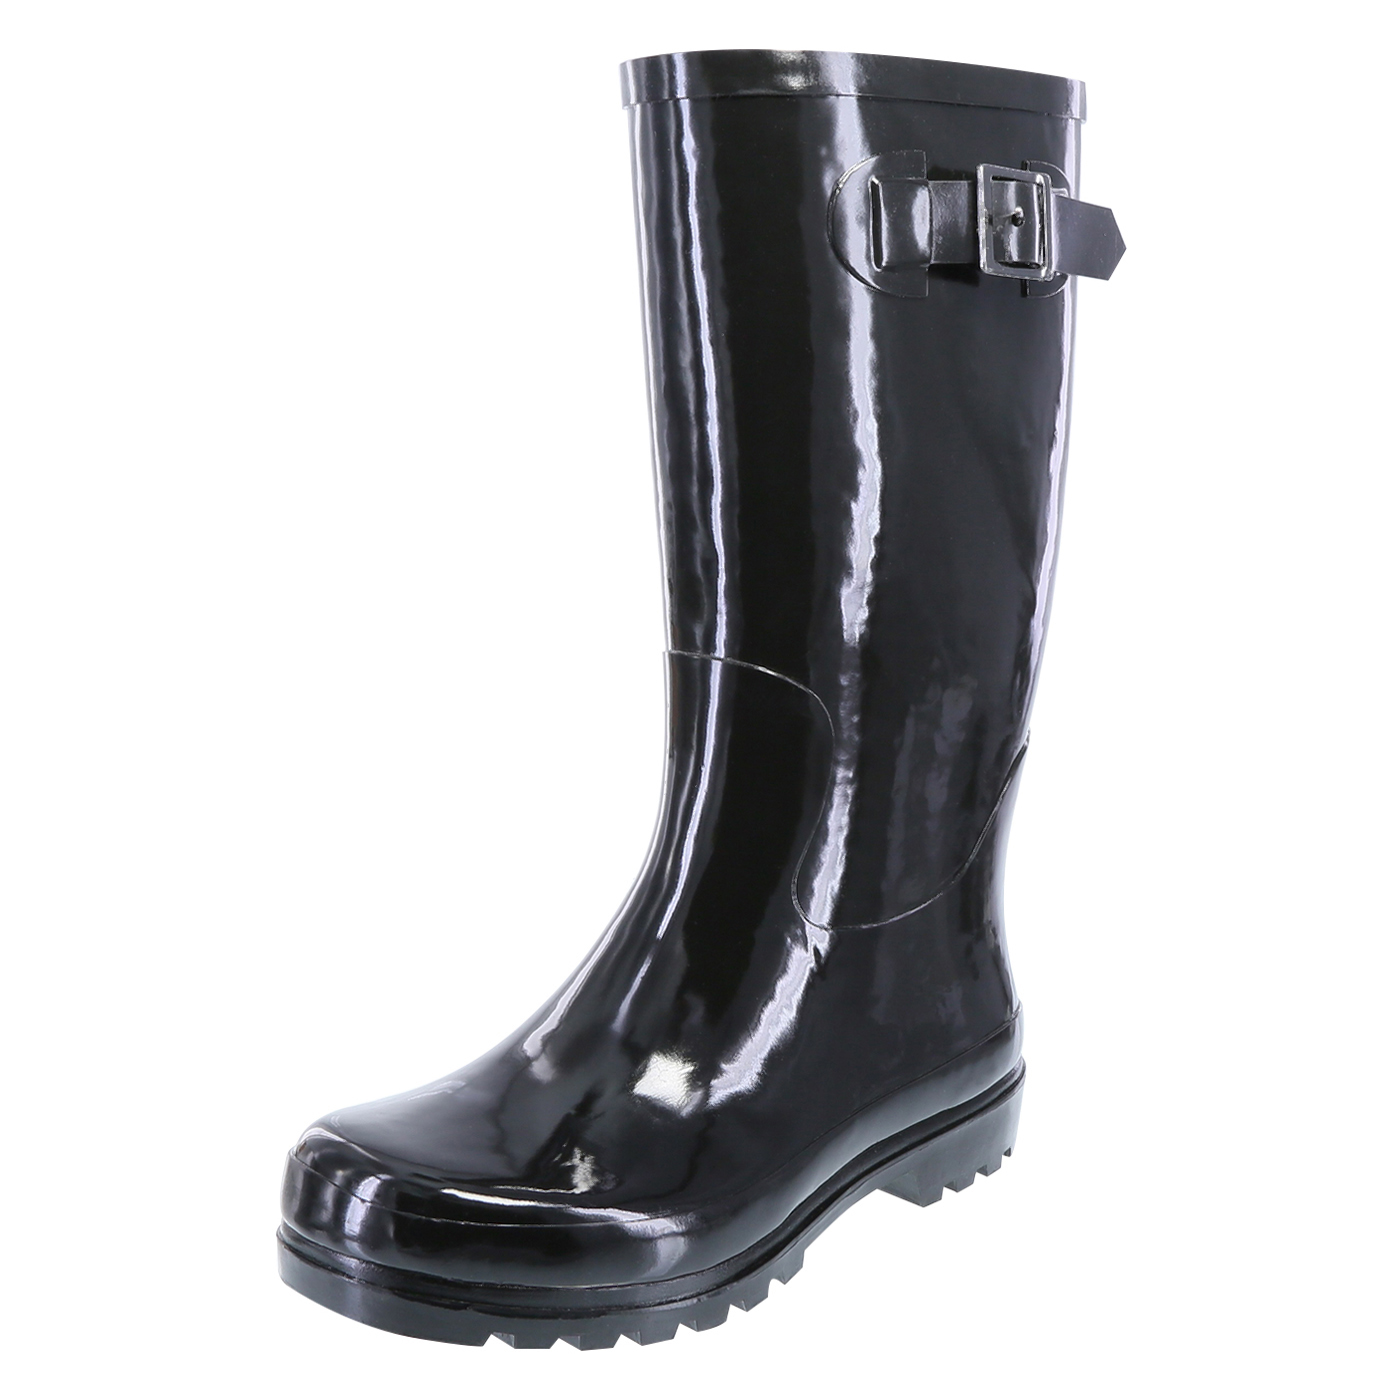 Womans Rain Boots pYTC5aKz